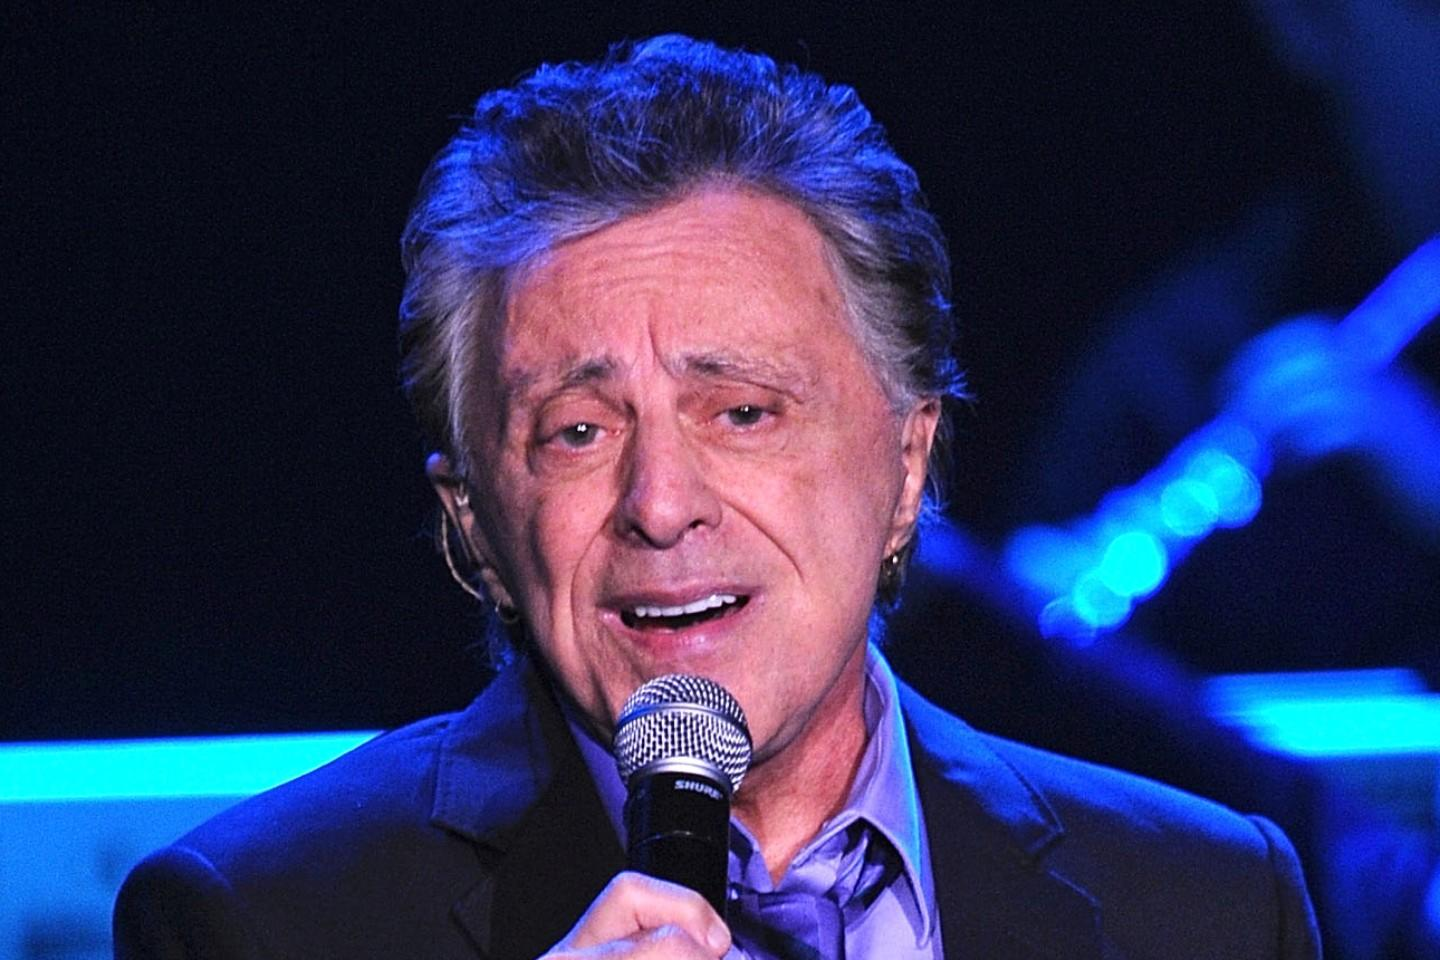 Frankie Valli Tour Dates 2020 Frankie Valli Tickets | Frankie Valli Tour Dates 2020 and Concert